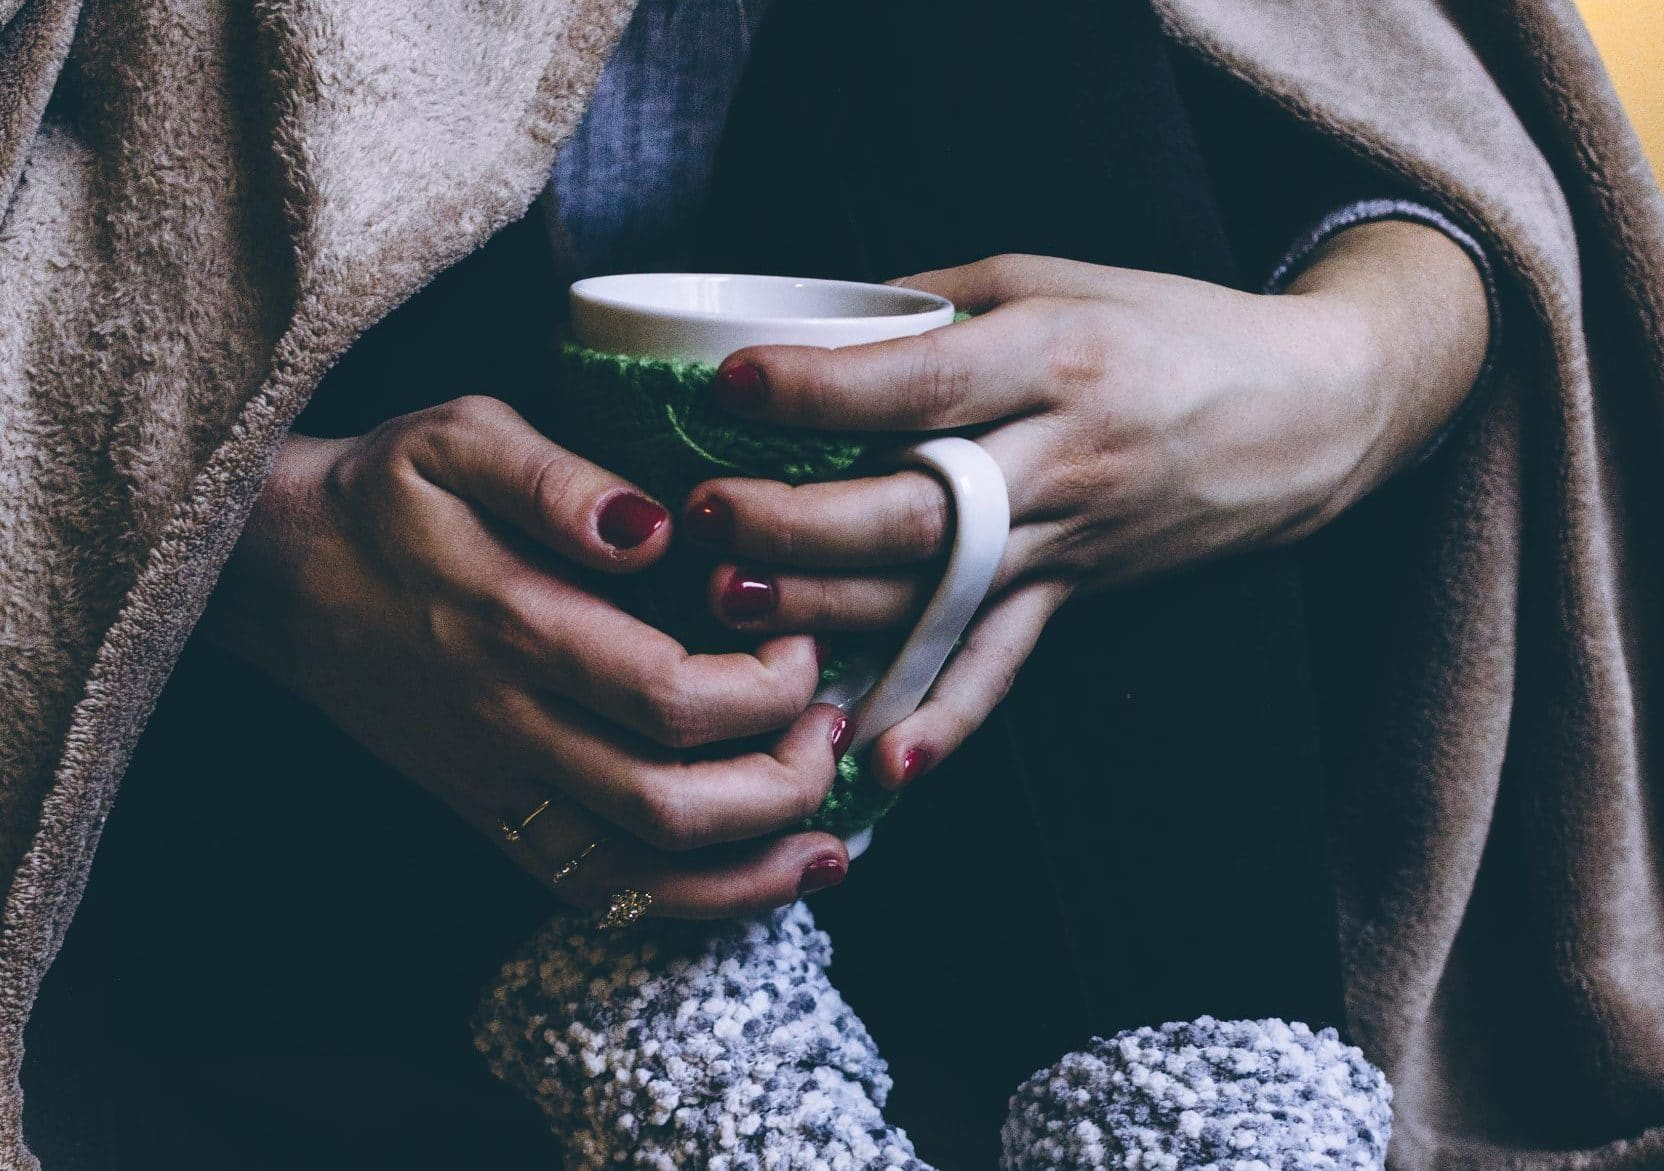 Woman with chronic pain holding a coffee cup and wrapped in a blanket.